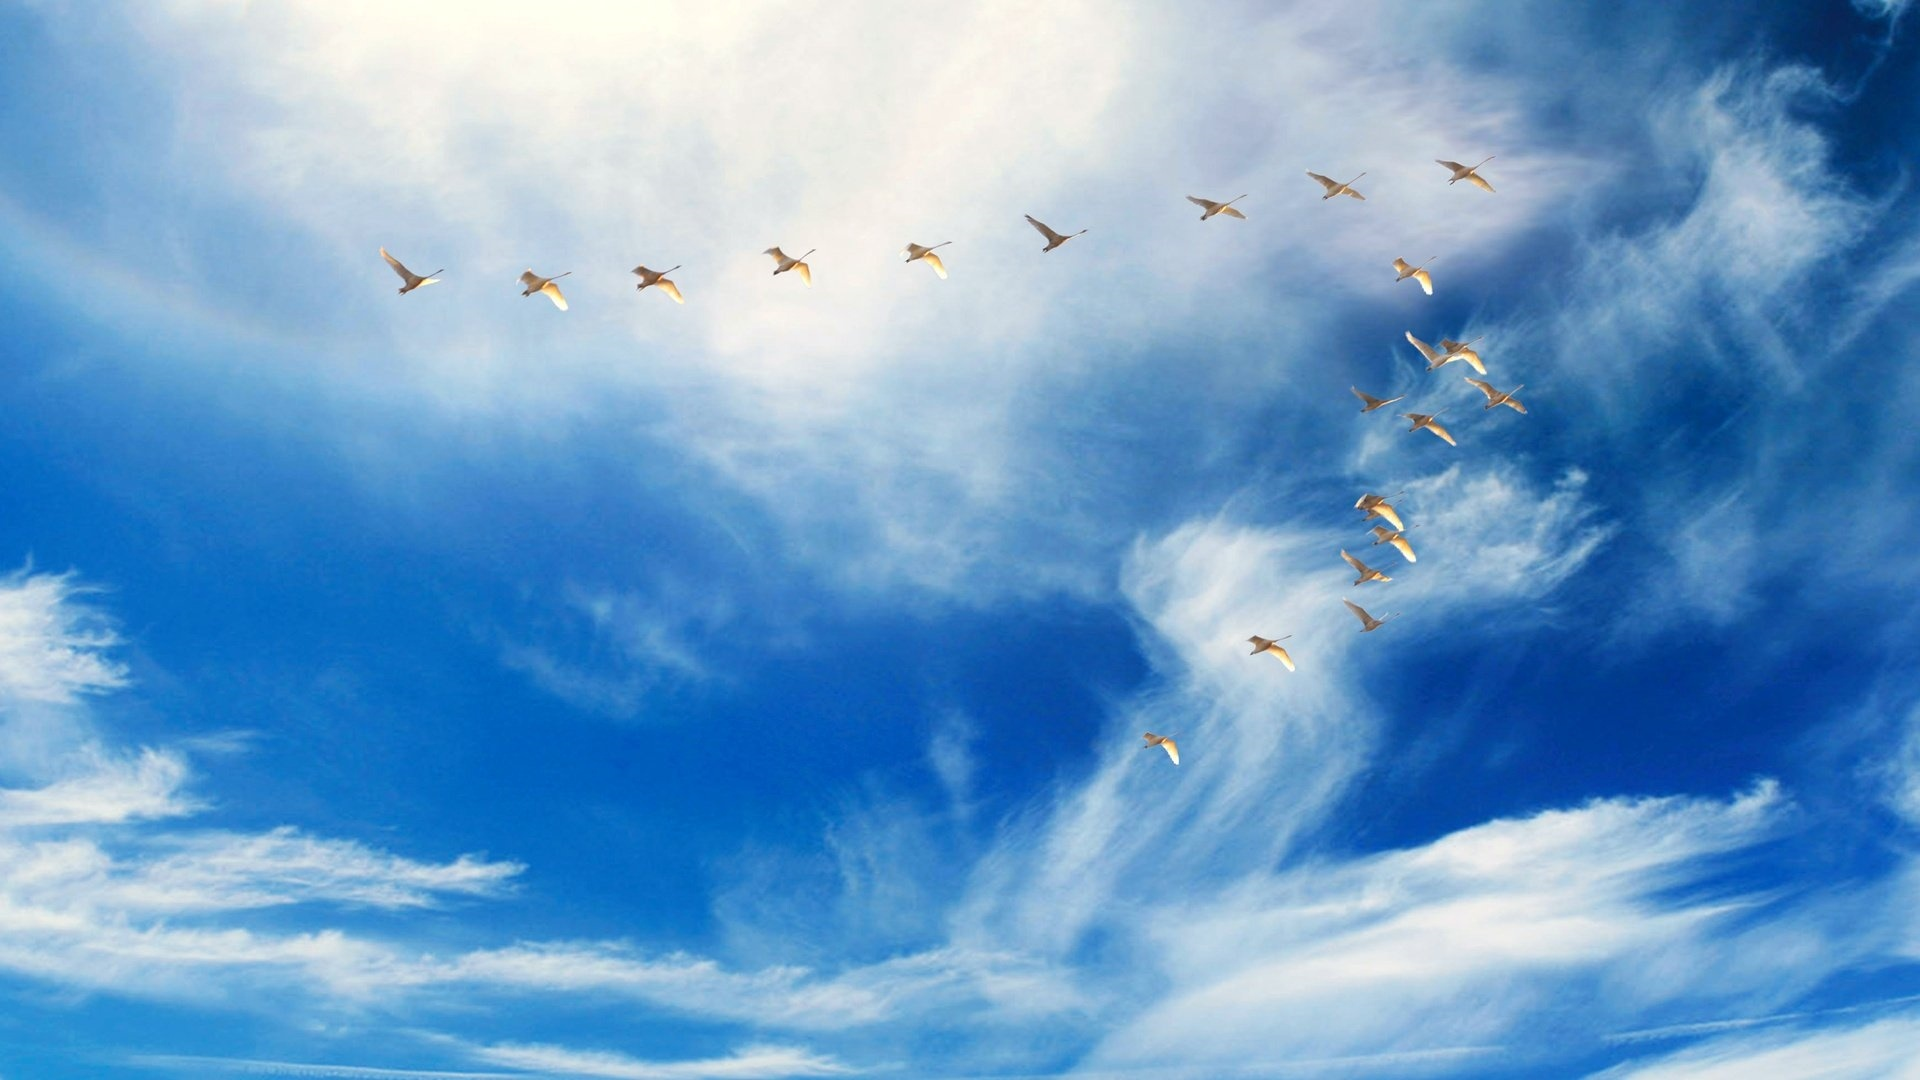 Wedge Birds In The Sky Picture